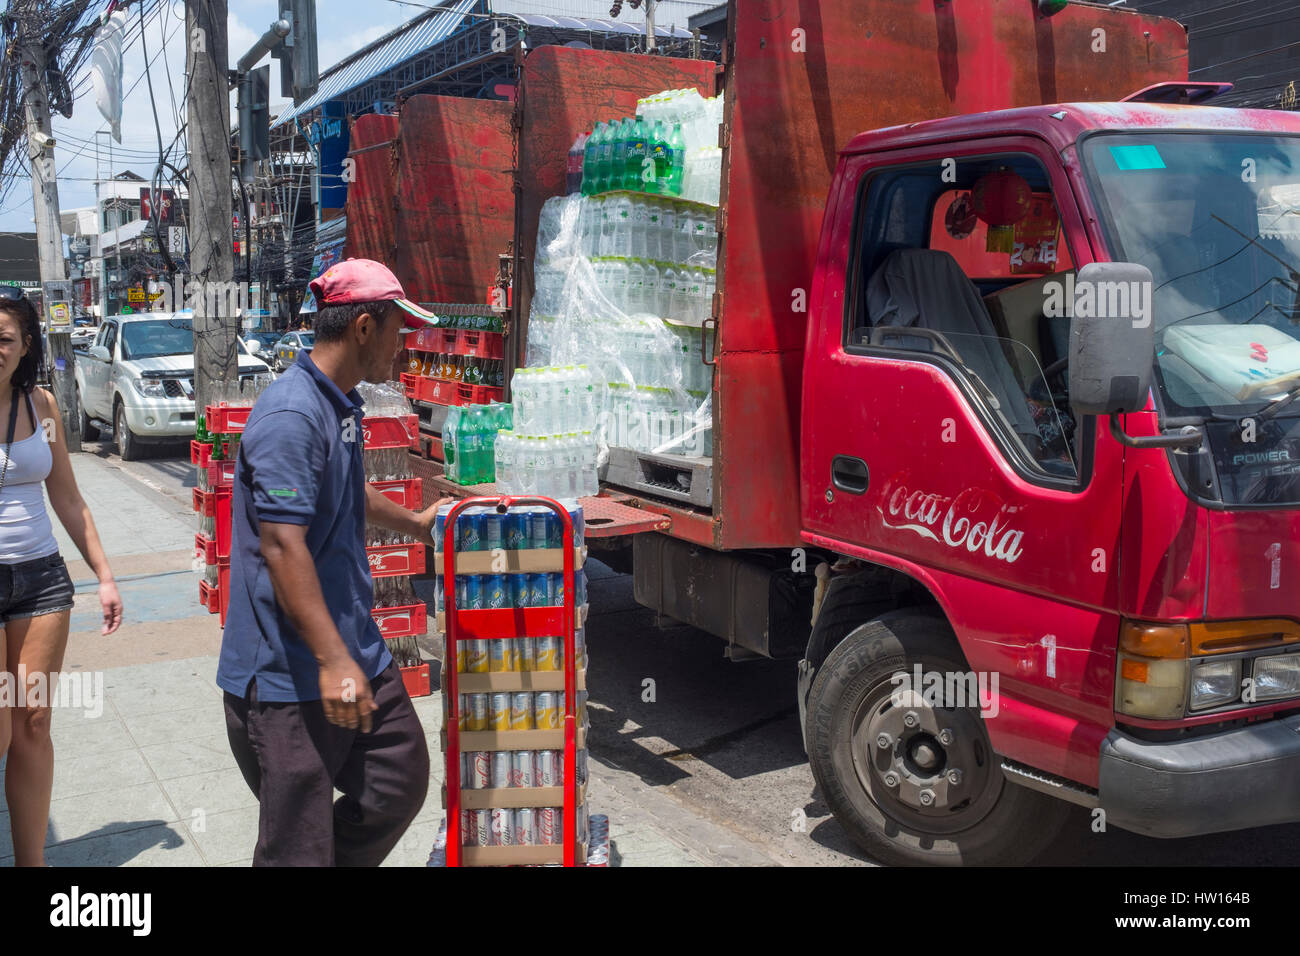 Coca Cola truck is unloading in Patong, Phuket, Thailand. 04-Mar-2017 - Stock Image